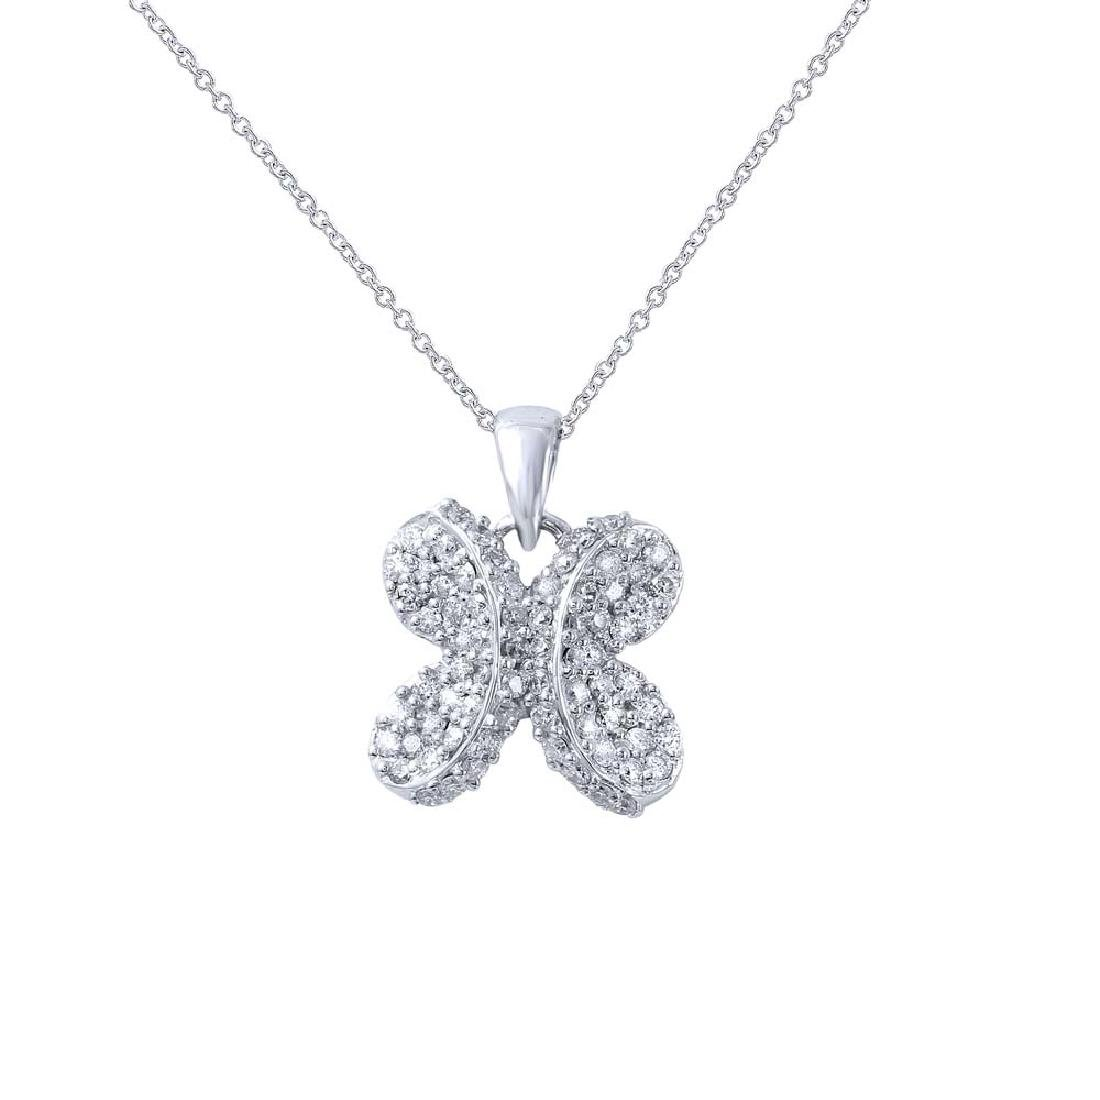 Genuine 0.67 TCW 18K White Gold Ladies Necklace